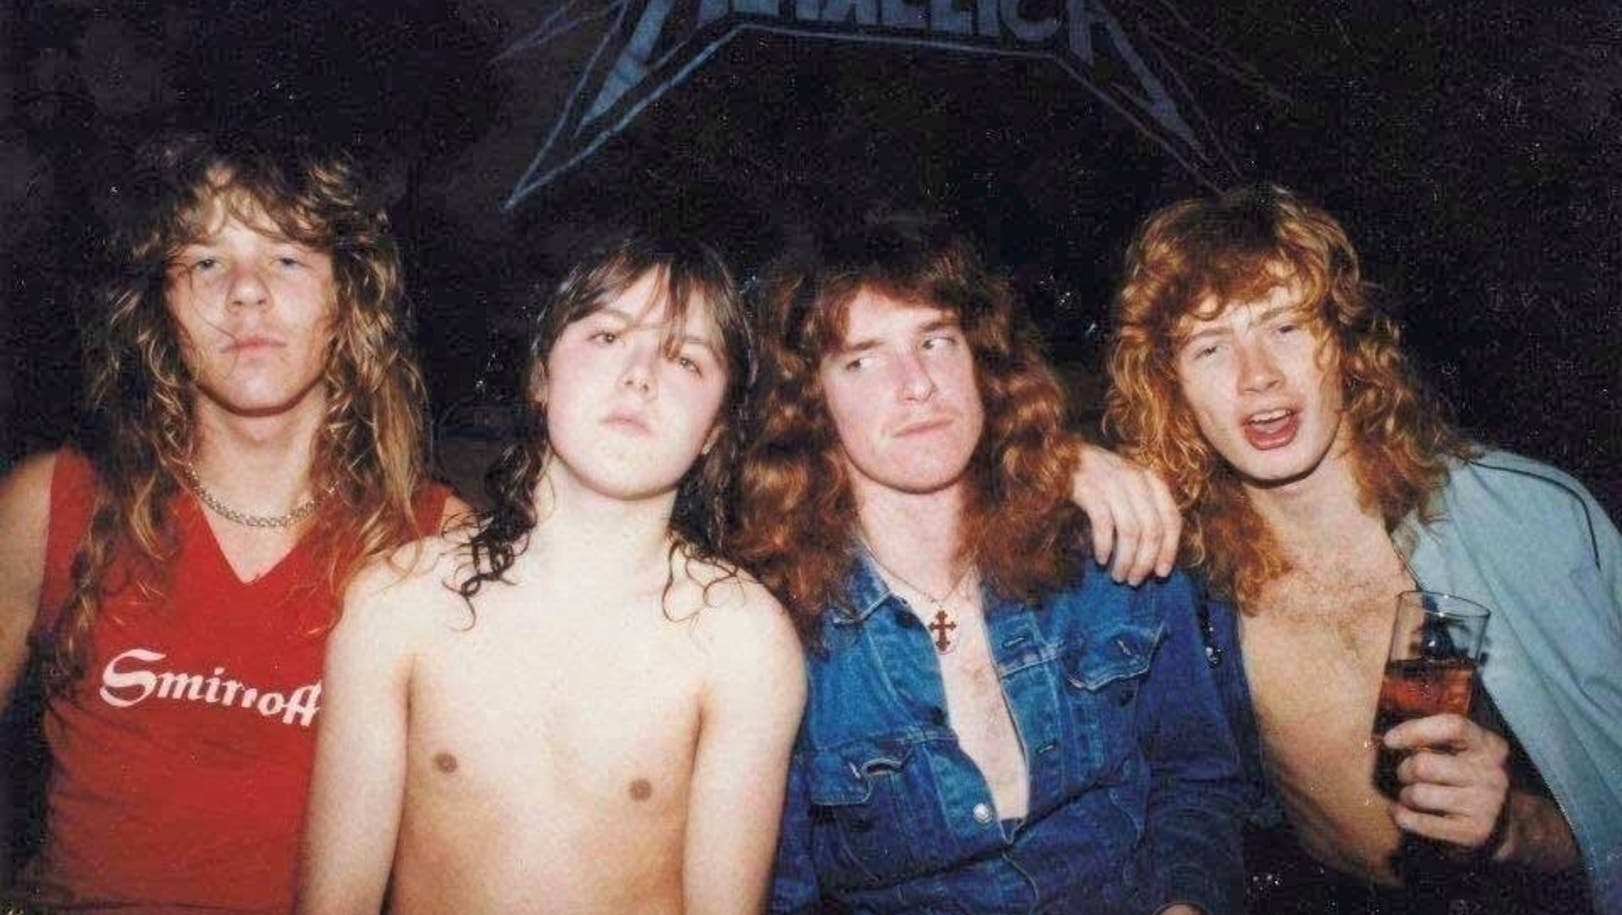 FOUND: Audio From Metallica's First Ever Show With Cliff Burton